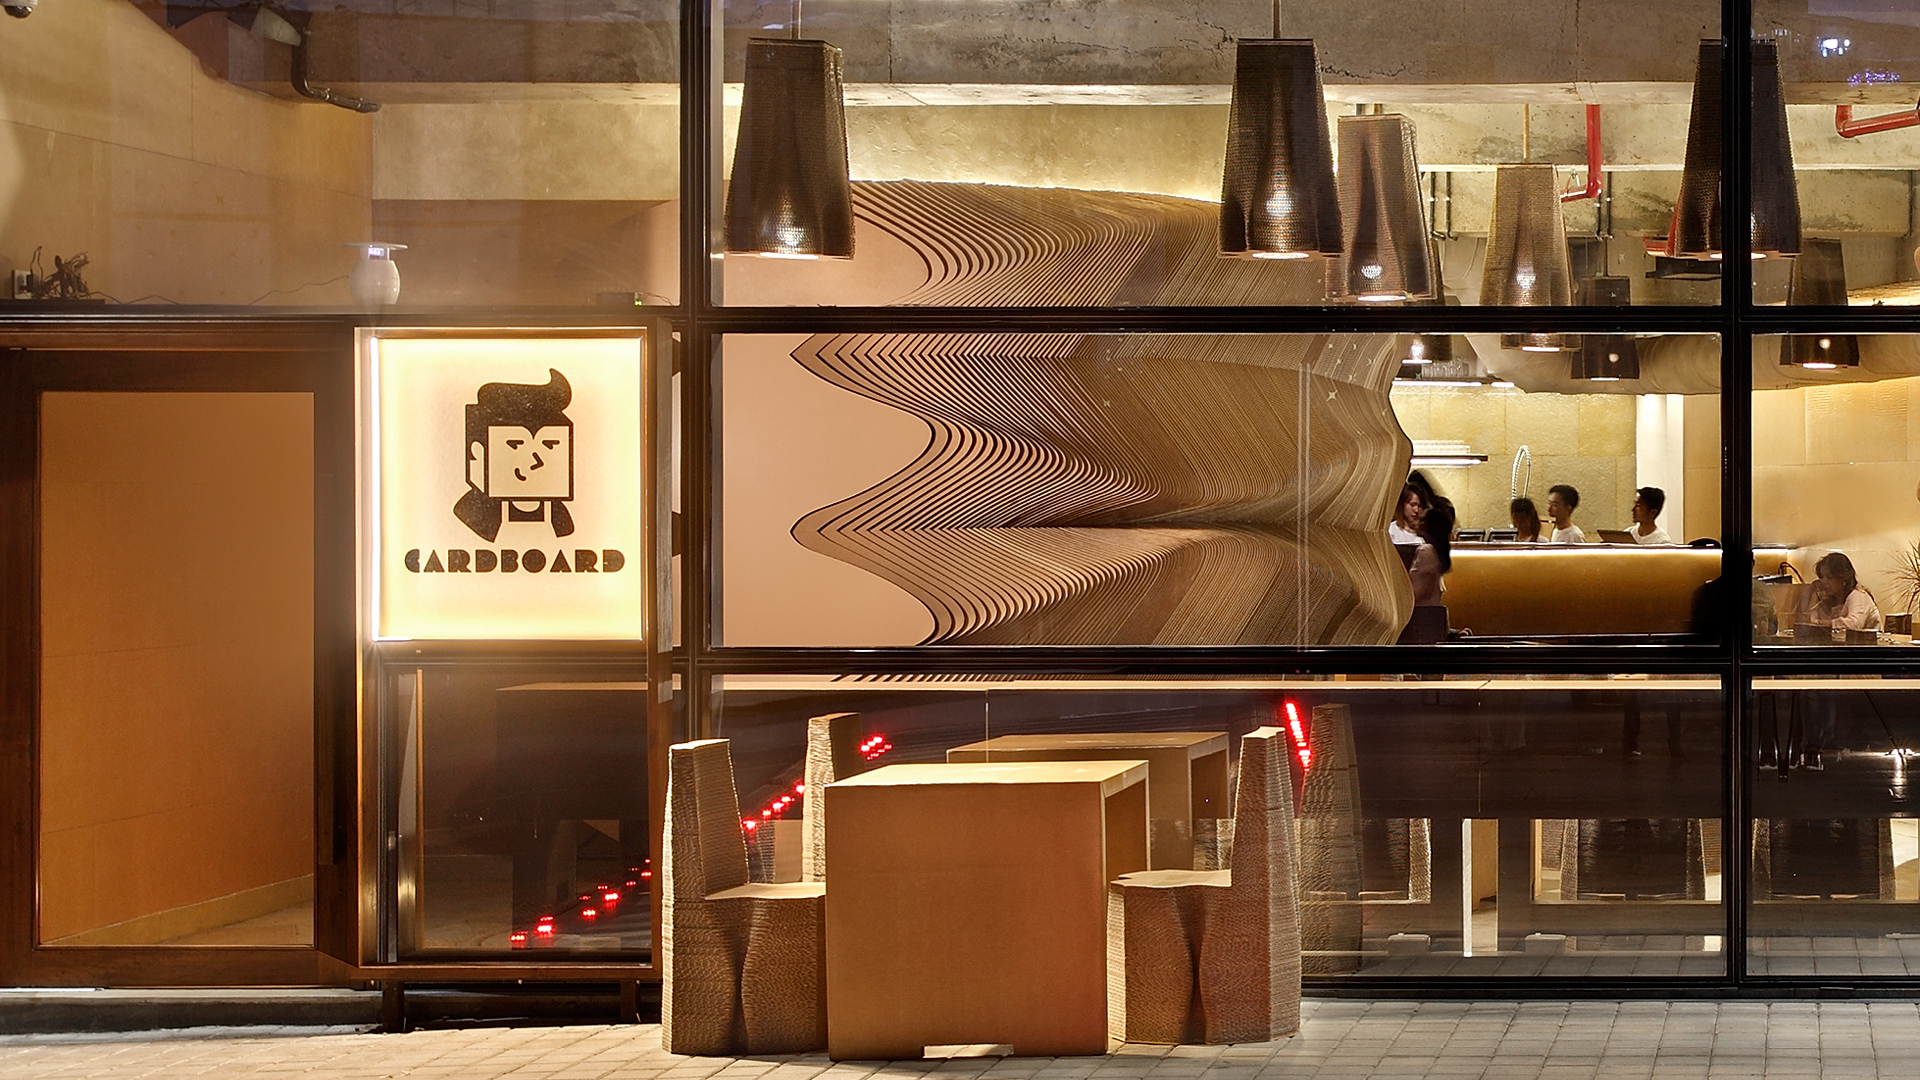 A street-side view of the Cardboard café | Cardboard | Nudes | Nuru Karim | STIR